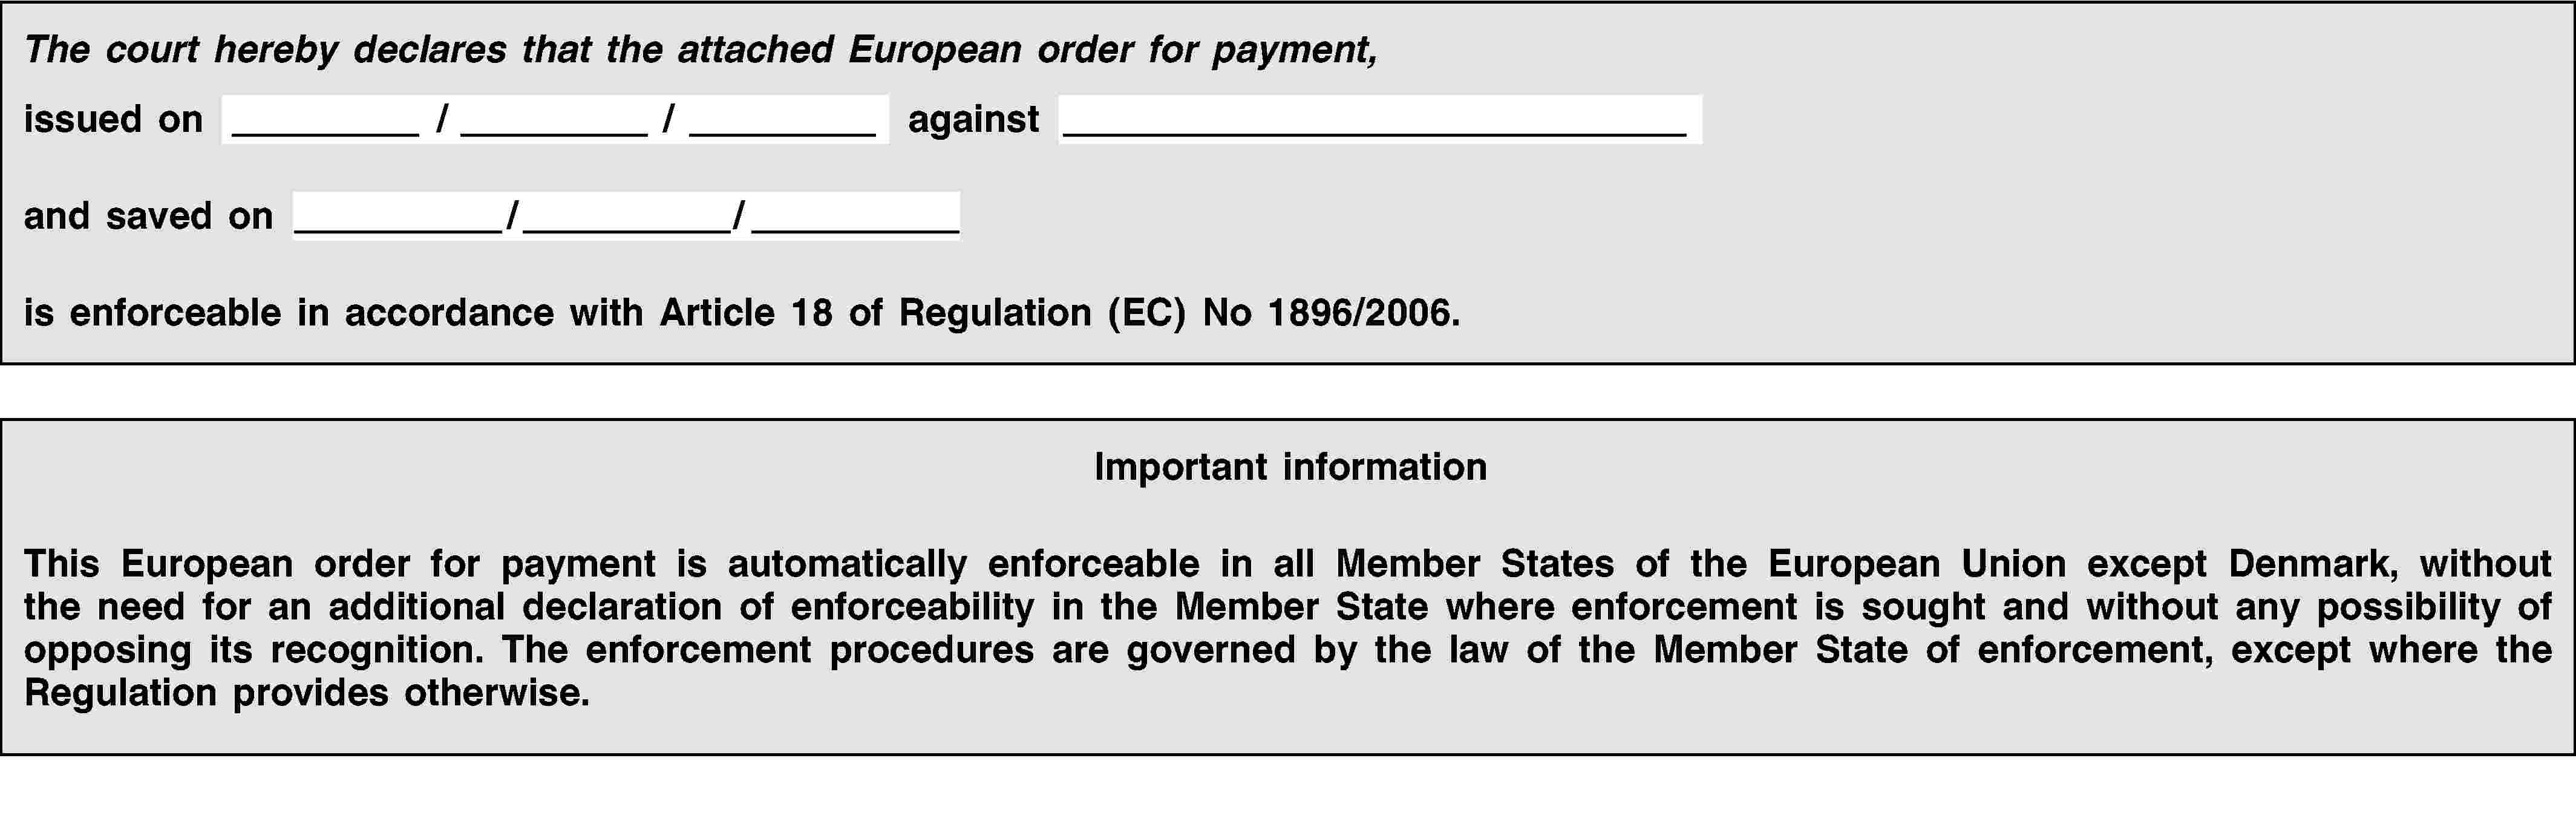 The court hereby declares that the attached European order for payment,issued on / / againstand saved on / /is enforceable in accordance with Article 18 of Regulation (EC) No 1896/2006.Important informationThis European order for payment is automatically enforceable in all Member States of the European Union except Denmark, without the need for an additional declaration of enforceability in the Member State where enforcement is sought and without any possibility of opposing its recognition. The enforcement procedures are governed by the law of the Member State of enforcement, except where the Regulation provides otherwise.